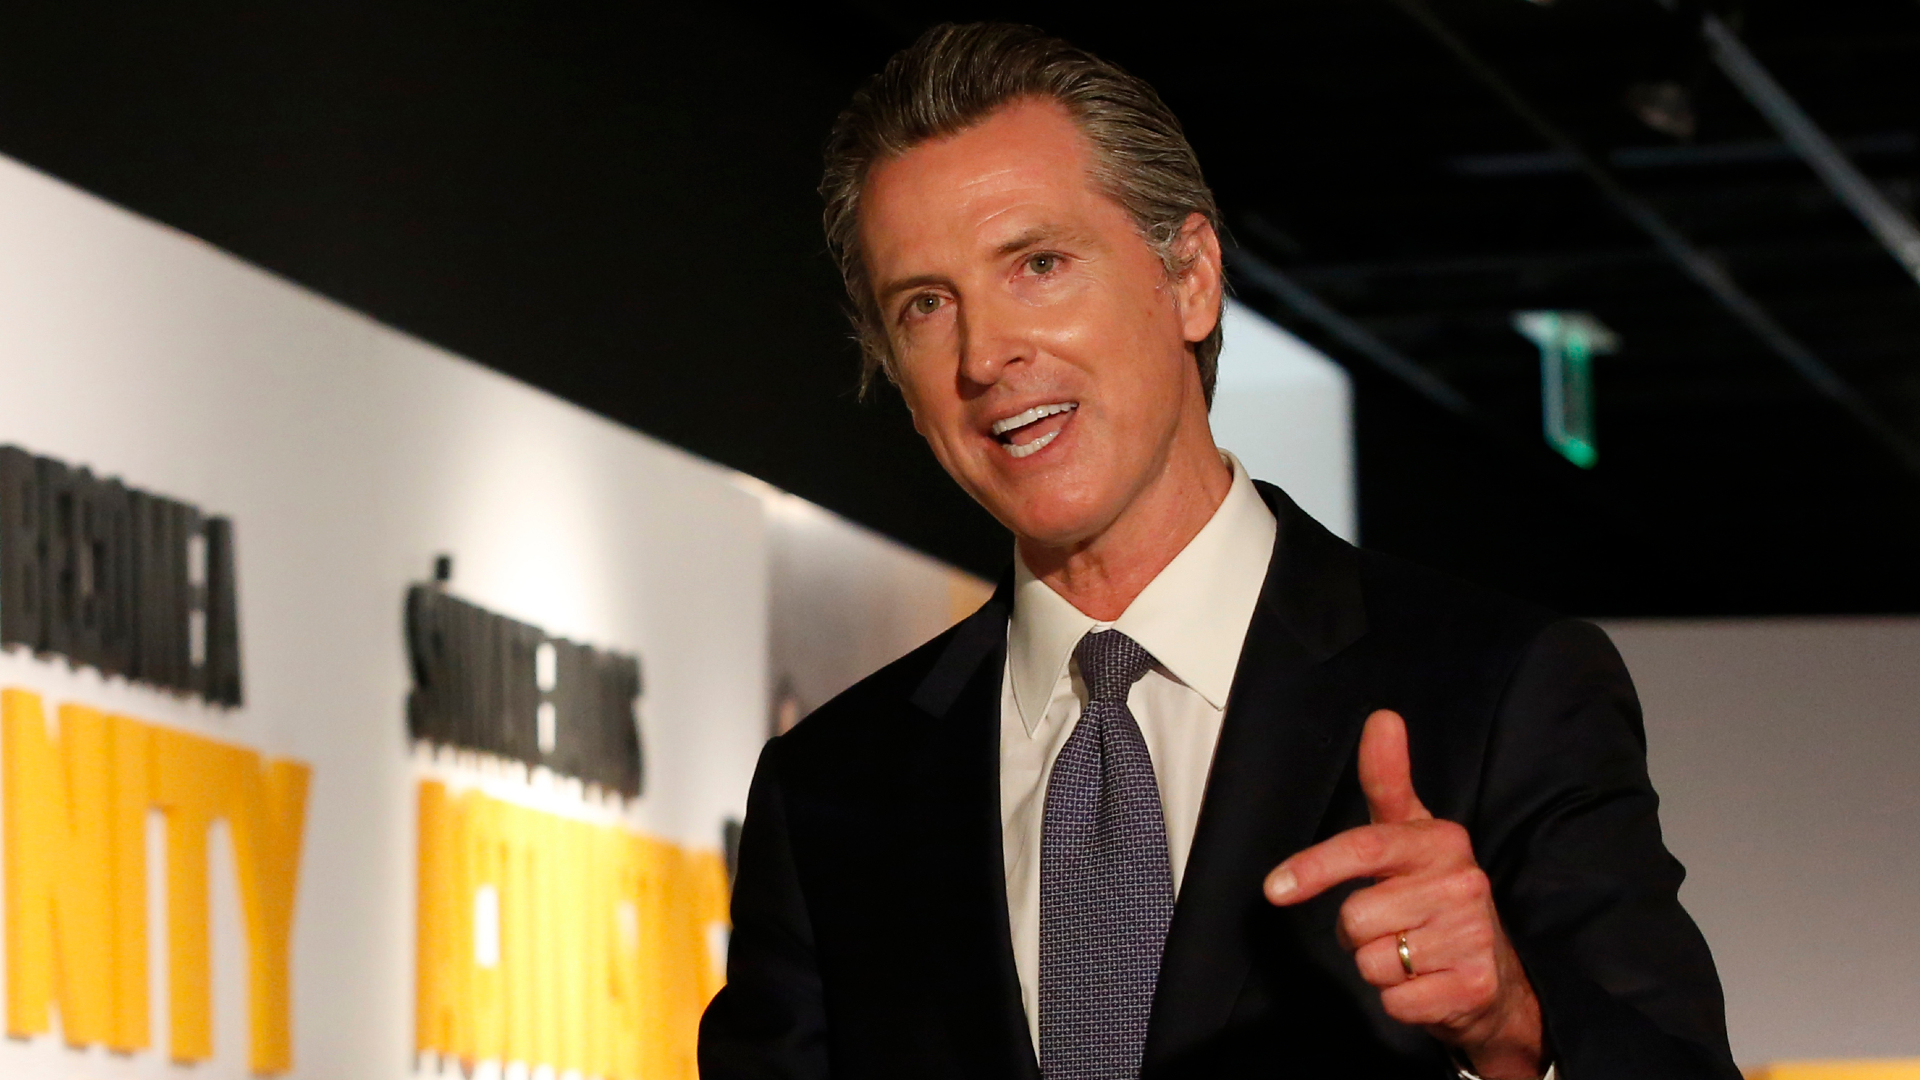 Approval rating for California's governor Newsom getting worse poll shows, 2/3/21